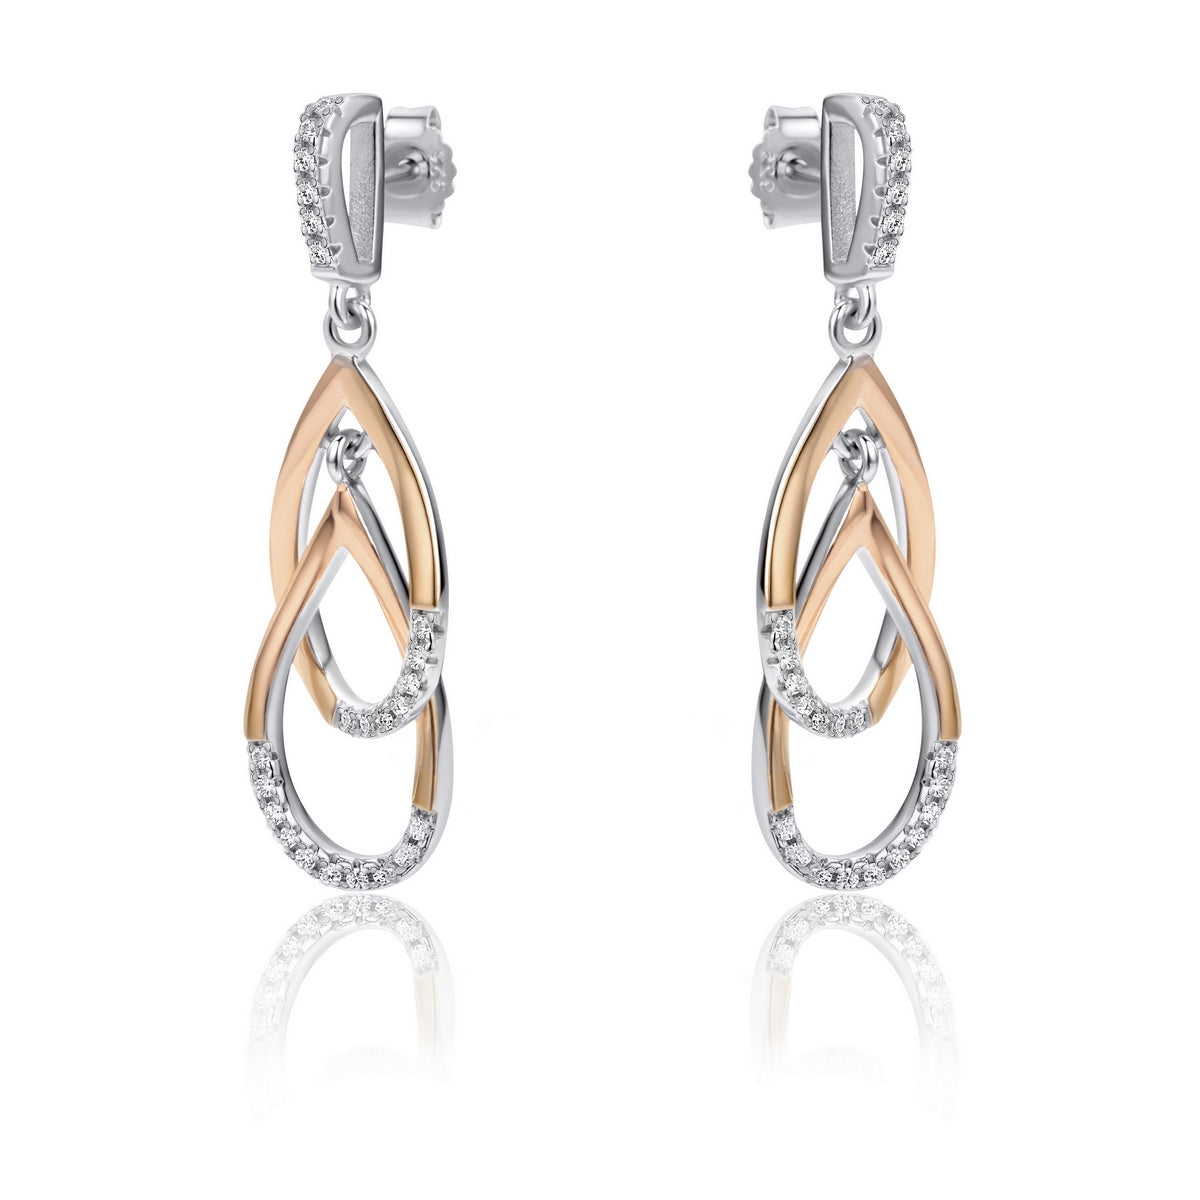 Real Effect Partially Stoneset Gold Cubic Zirconia Interlocking Drop Earrings in Sterling Silver